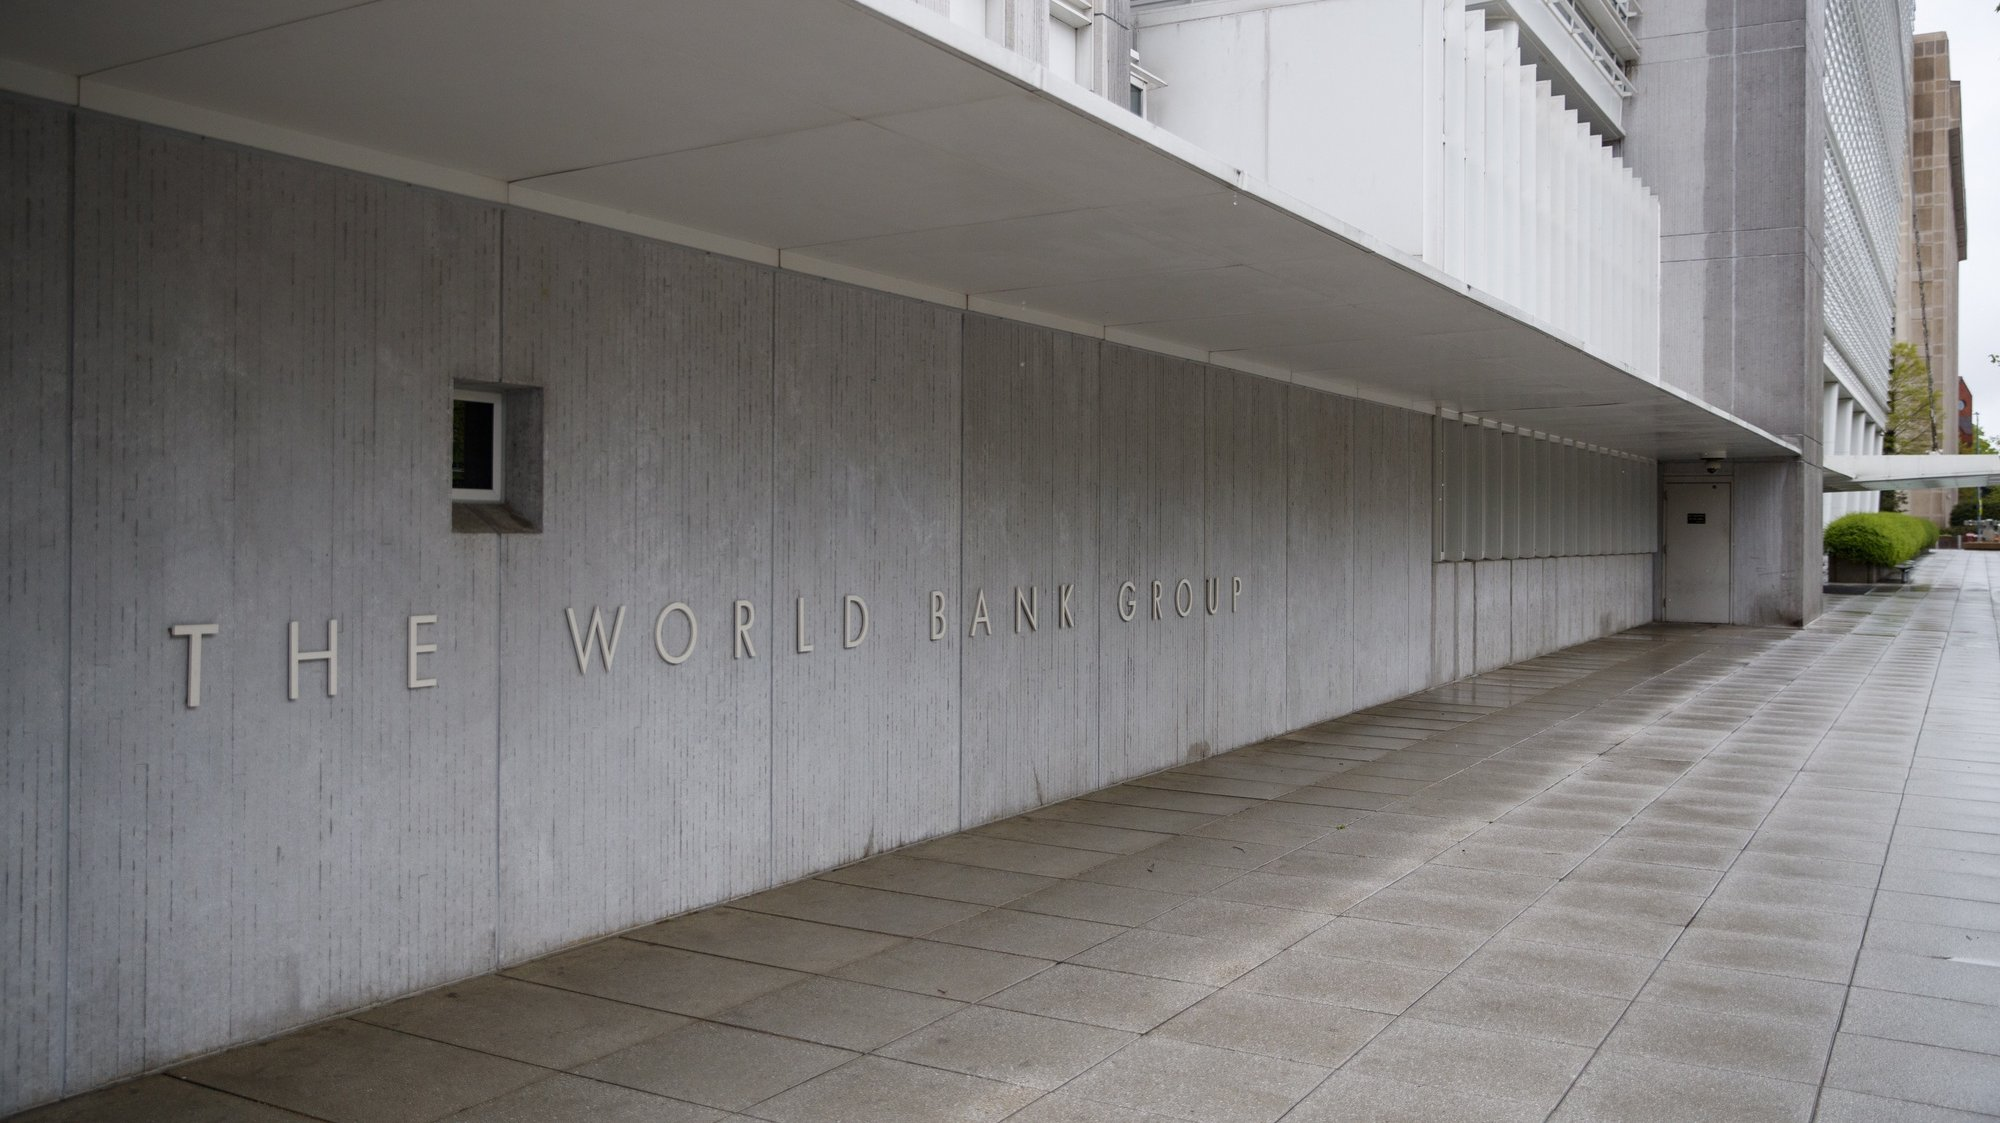 epa08360892 The closed World Bank Group headquarters in Washington, DC, USA, 13 April 2020. The Spring 2020 virtual meetings of the International Monetary Fund (IMF) and World Bank (WB) are taking place this week against the backdrop of a severe global economic contraction triggered by the COVID-19 coronavirus pandemic.  EPA/SHAWN THEW